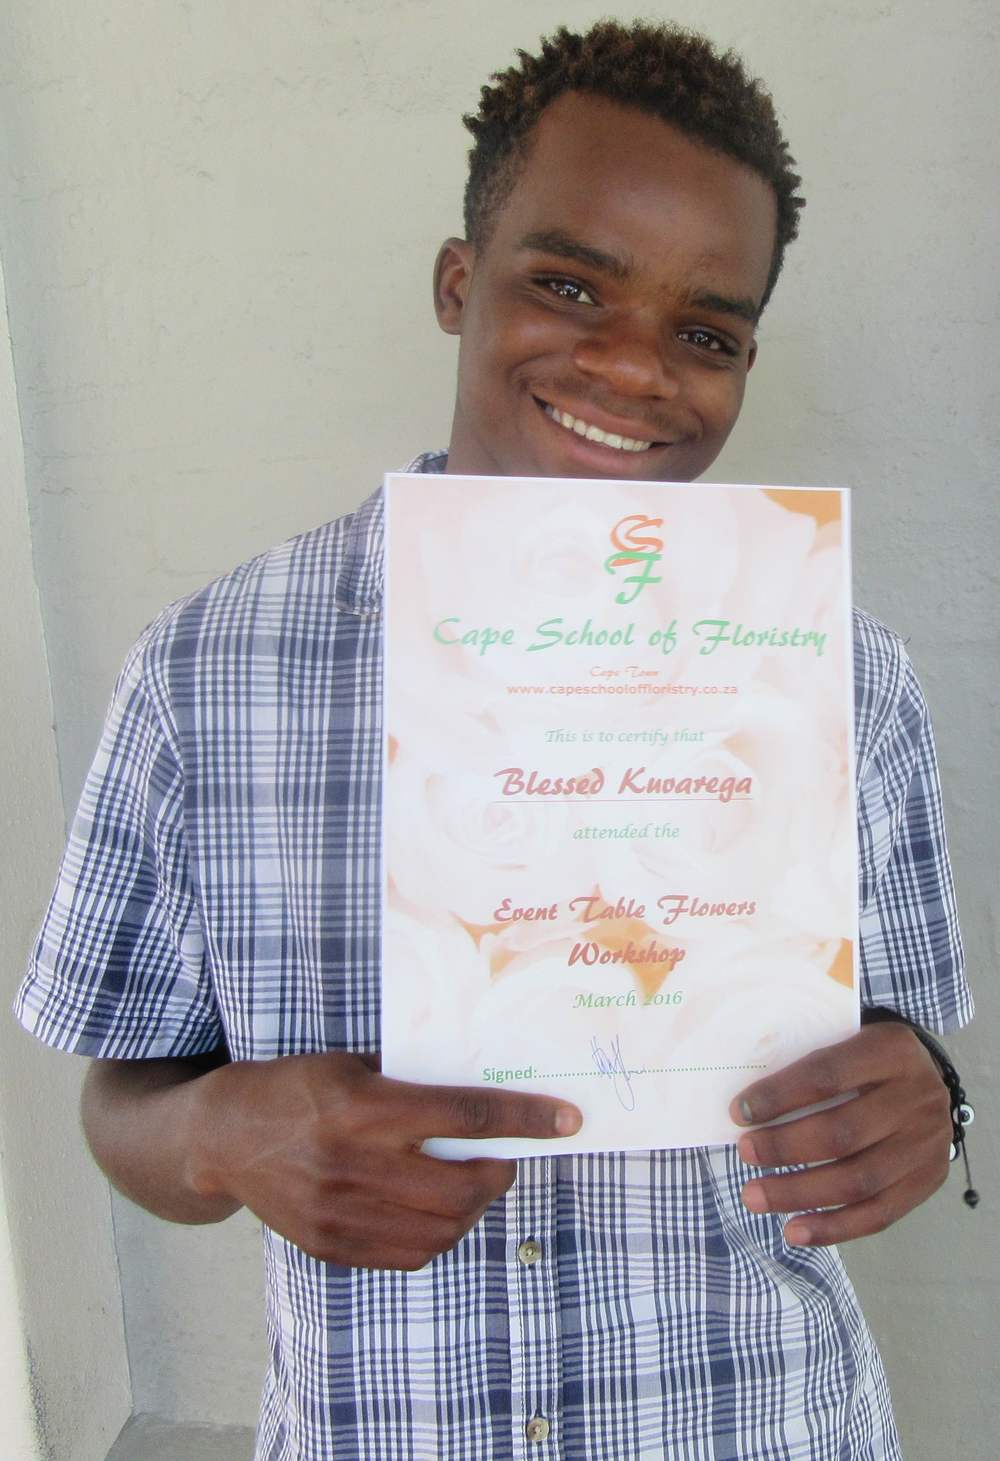 Blessed with Certificate 2.jpg